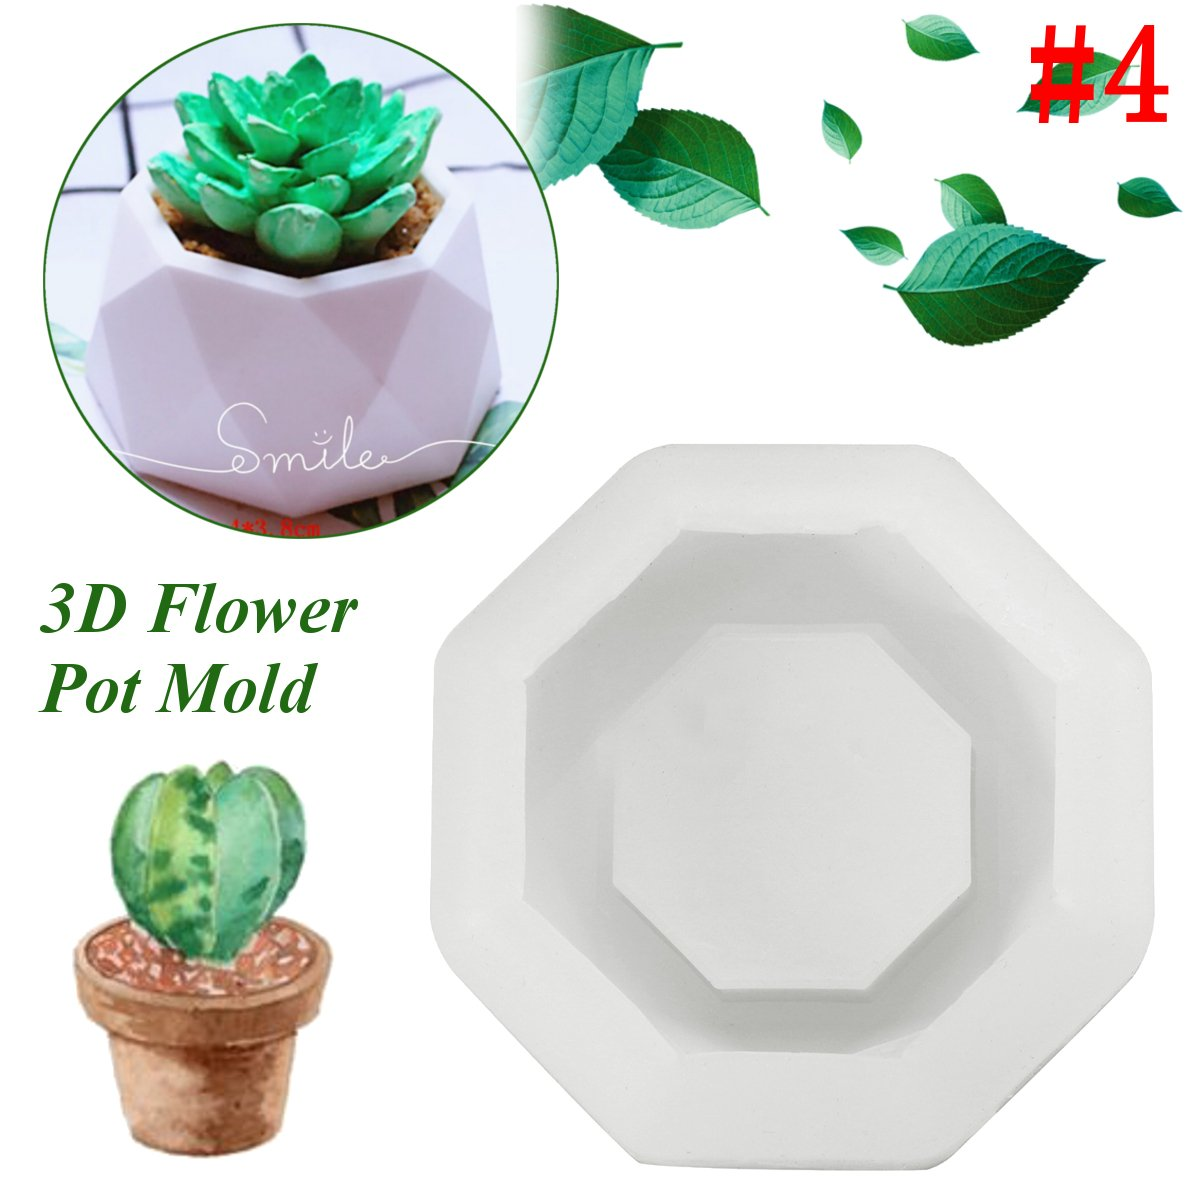 MeiMeiDa 4 Pack Mini Octagon Flower Pot Silicone Molds DIY Craft Molds for Small Cactus or Seedlings Succulent Plant Planter Pot Mold Concrete Cement Plaster Molds Silicone Ice Shot Glass Molds